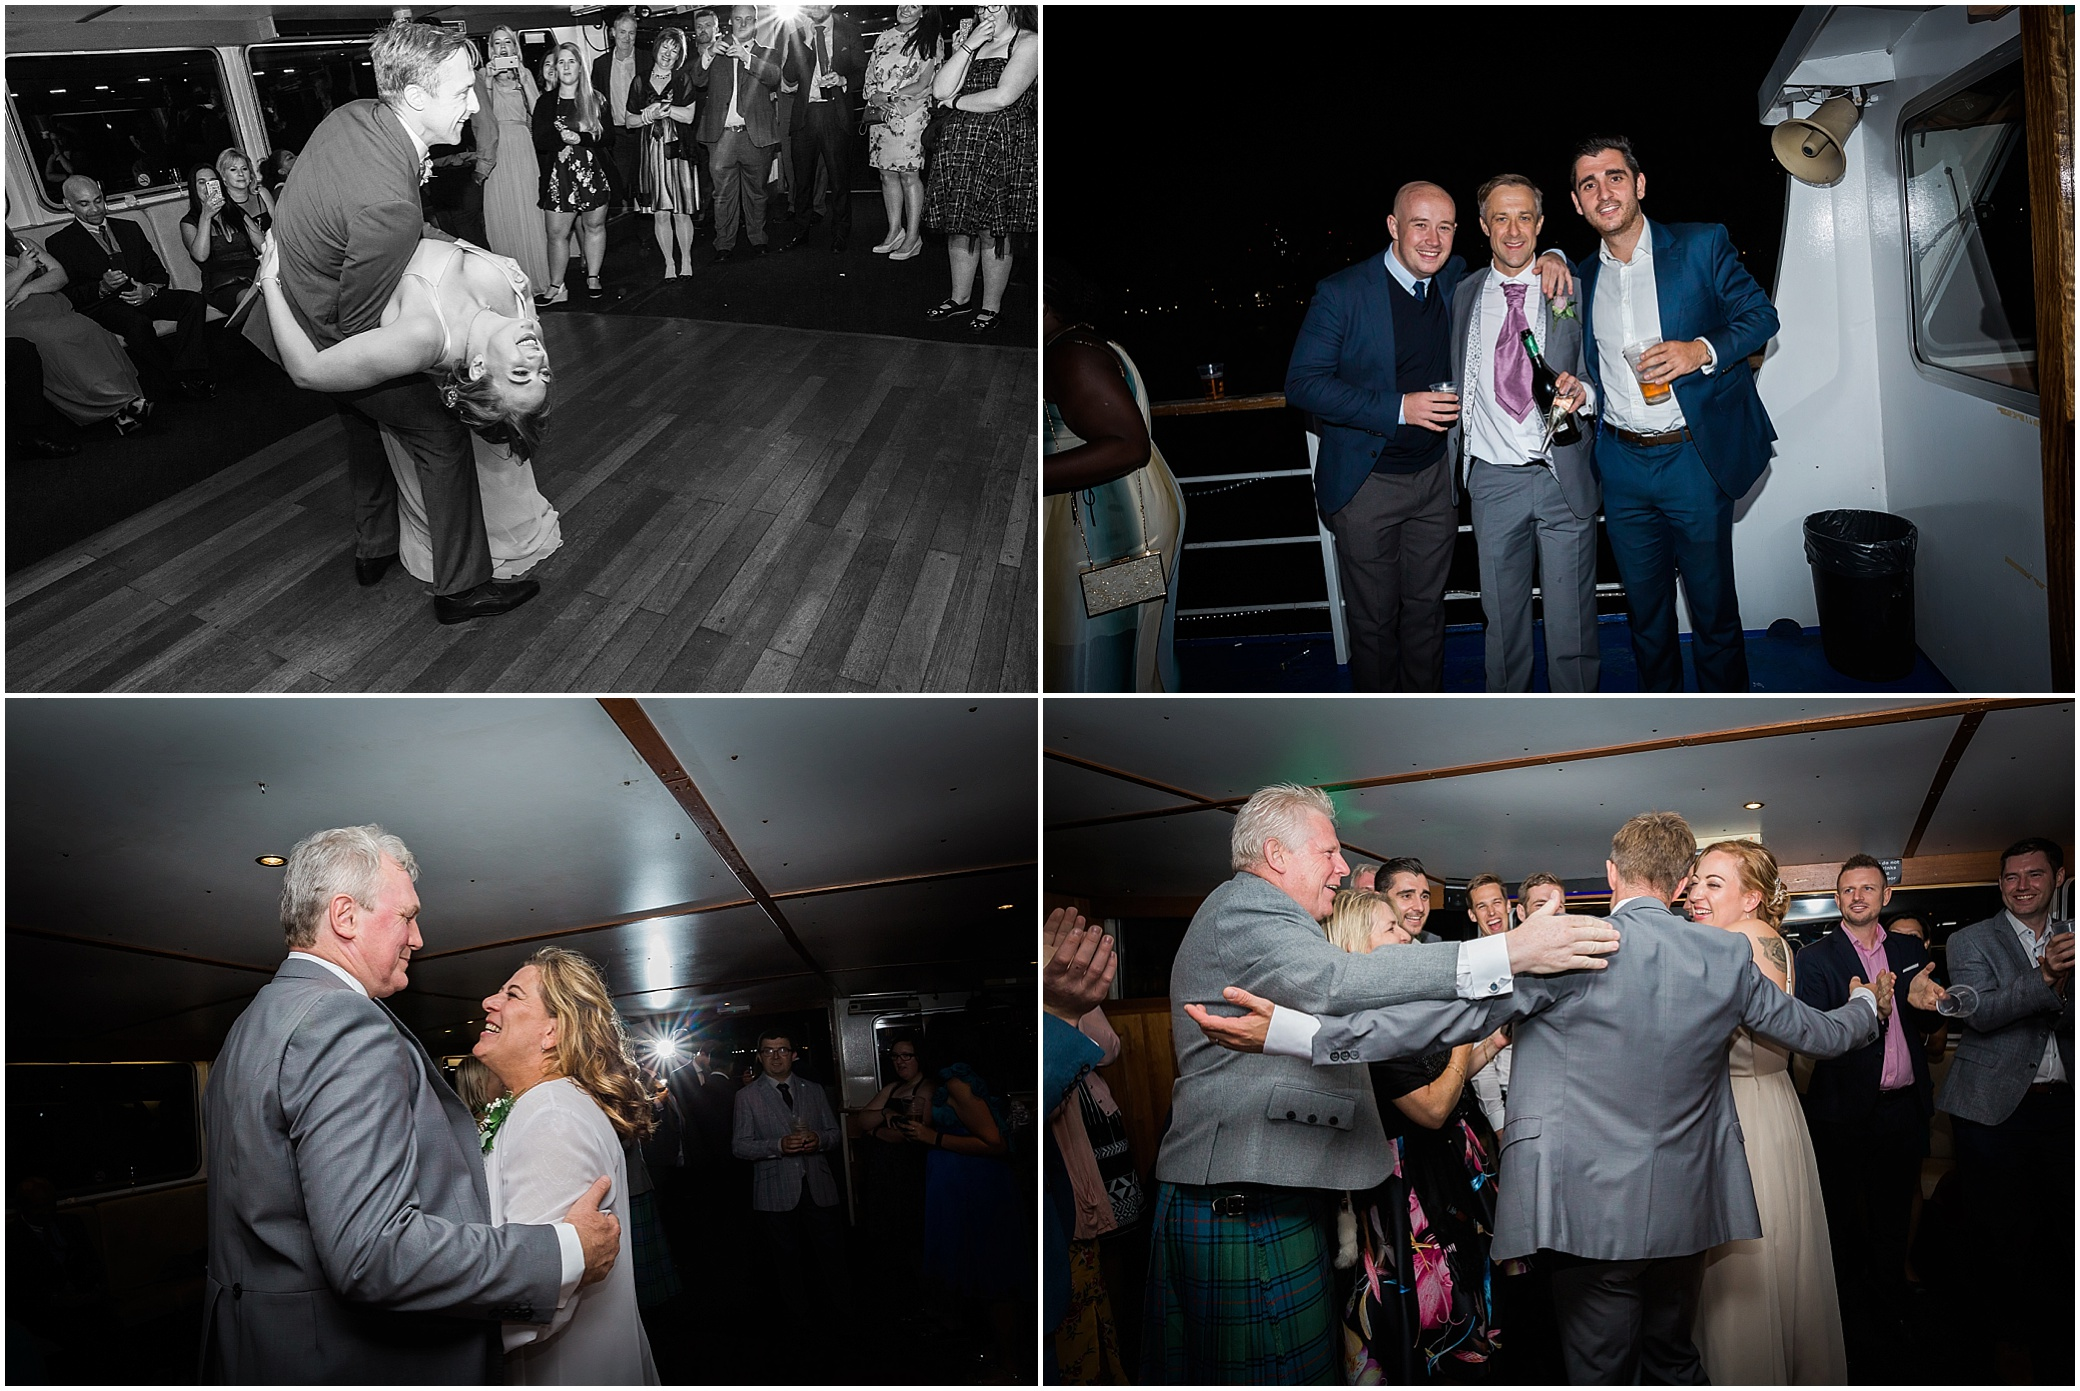 Guests enjoying a wedding reception on a river boat on the Thames in London